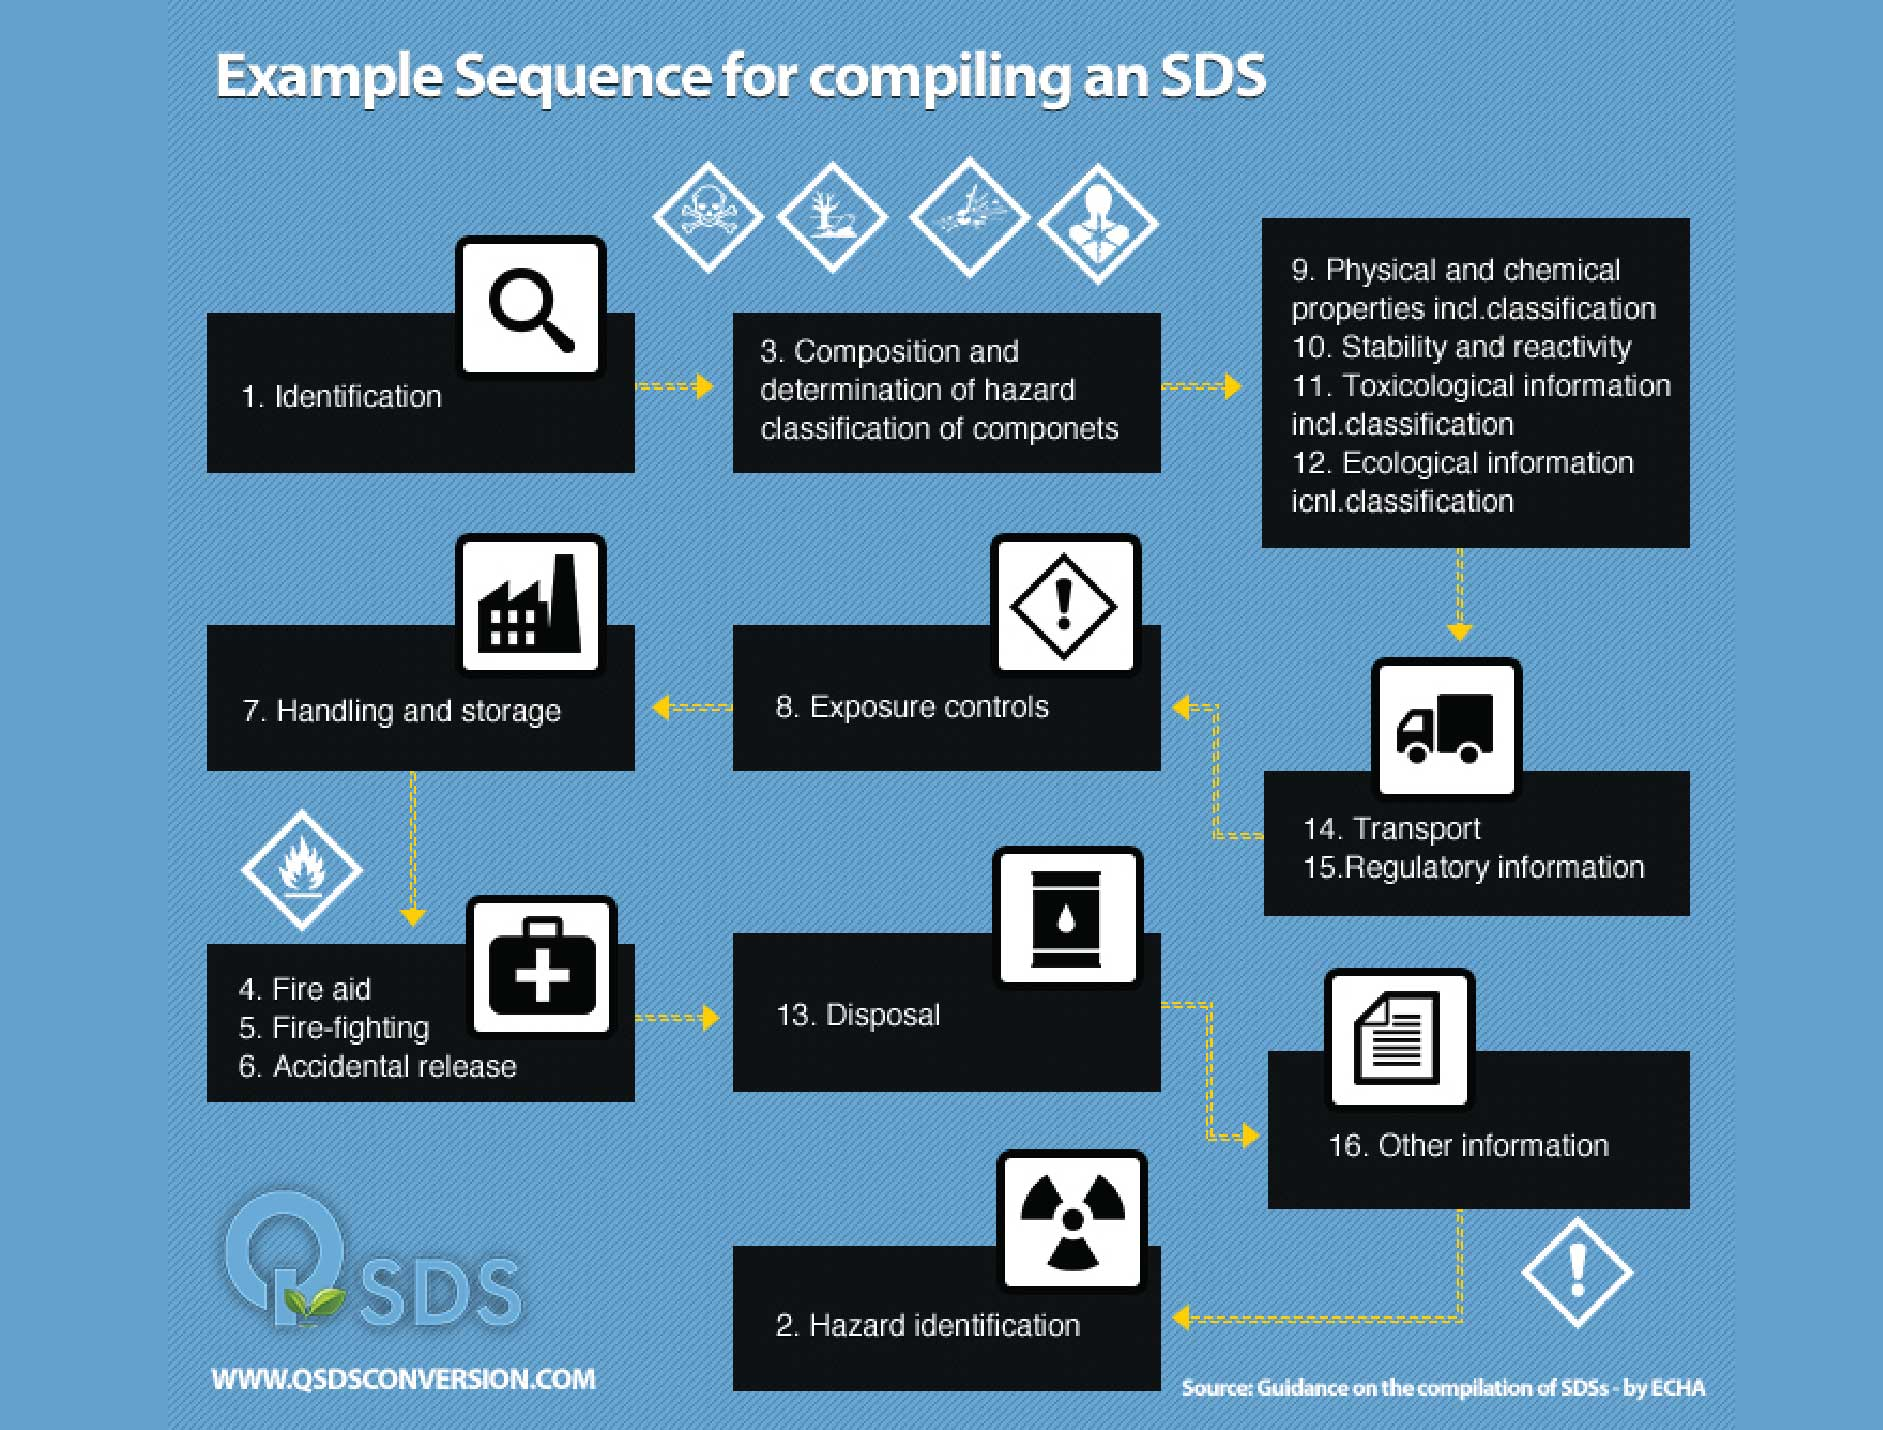 Example Sequence for Creating a SDS